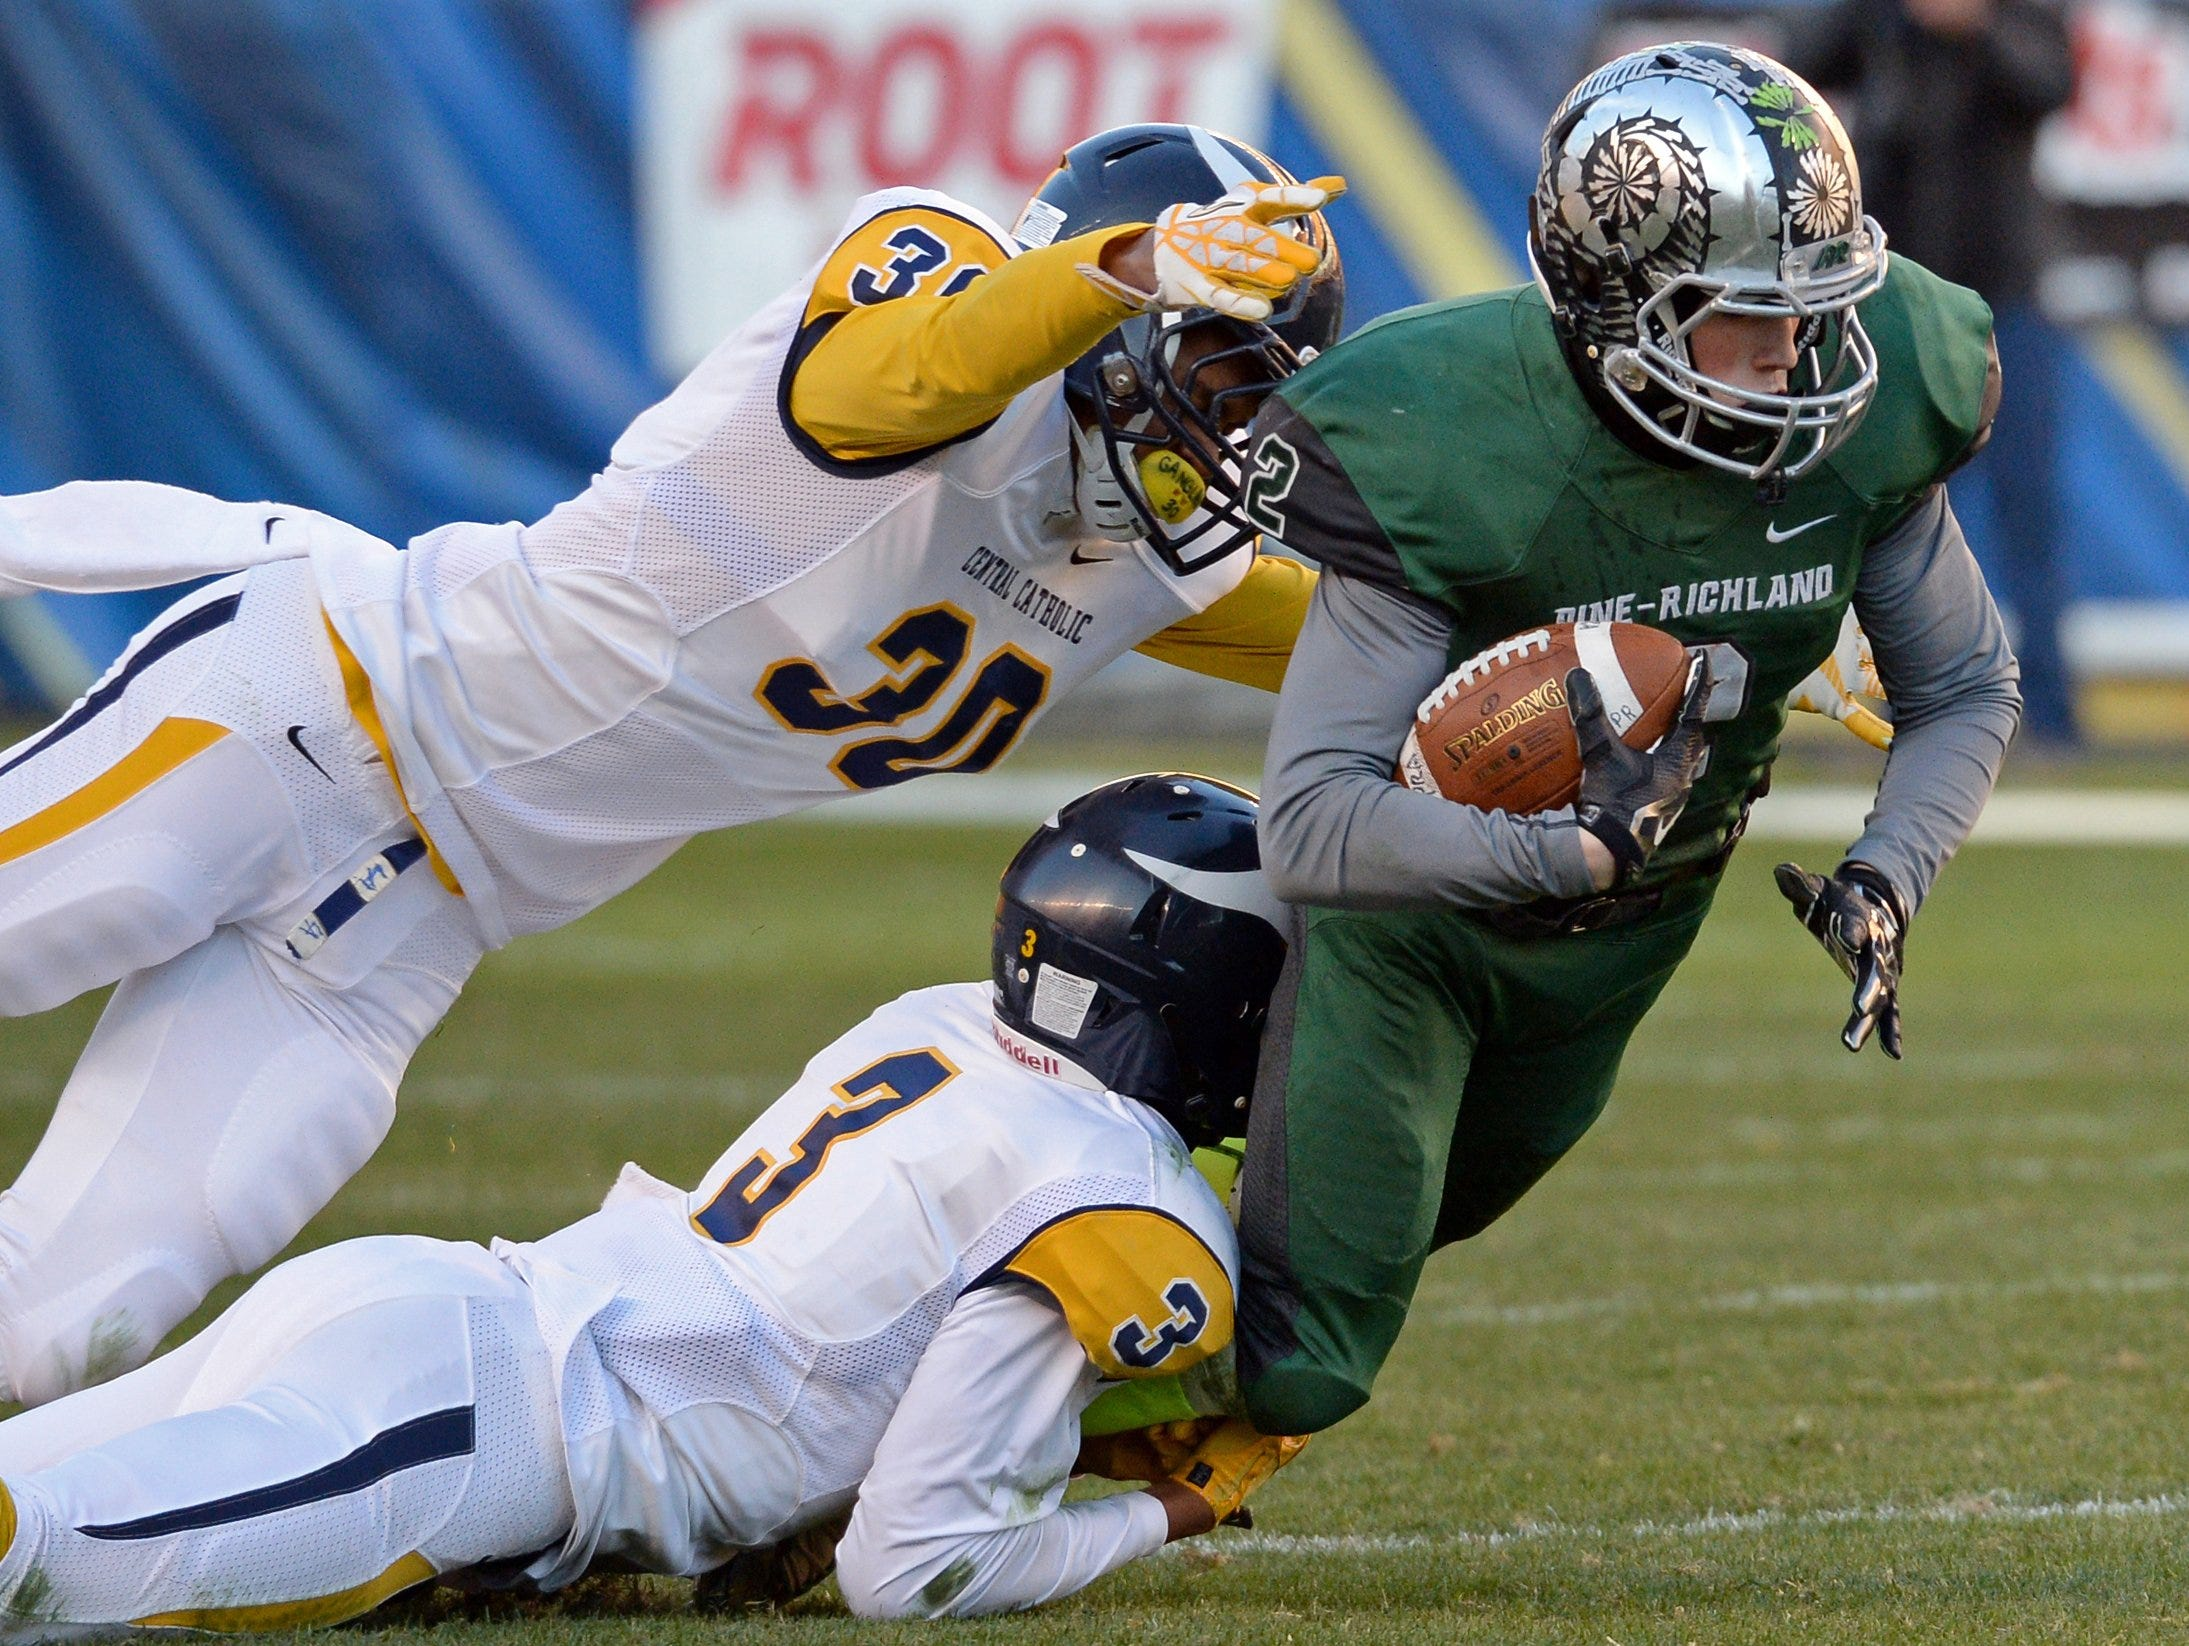 Pine-Richland's Michael Merhaut, right, carries the ball as he's taken down by Pittsburgh Central Catholic's Damar Hamlin (3) and Bryan Glover (30) on Nov. 21, 2014, in Pittsburgh.